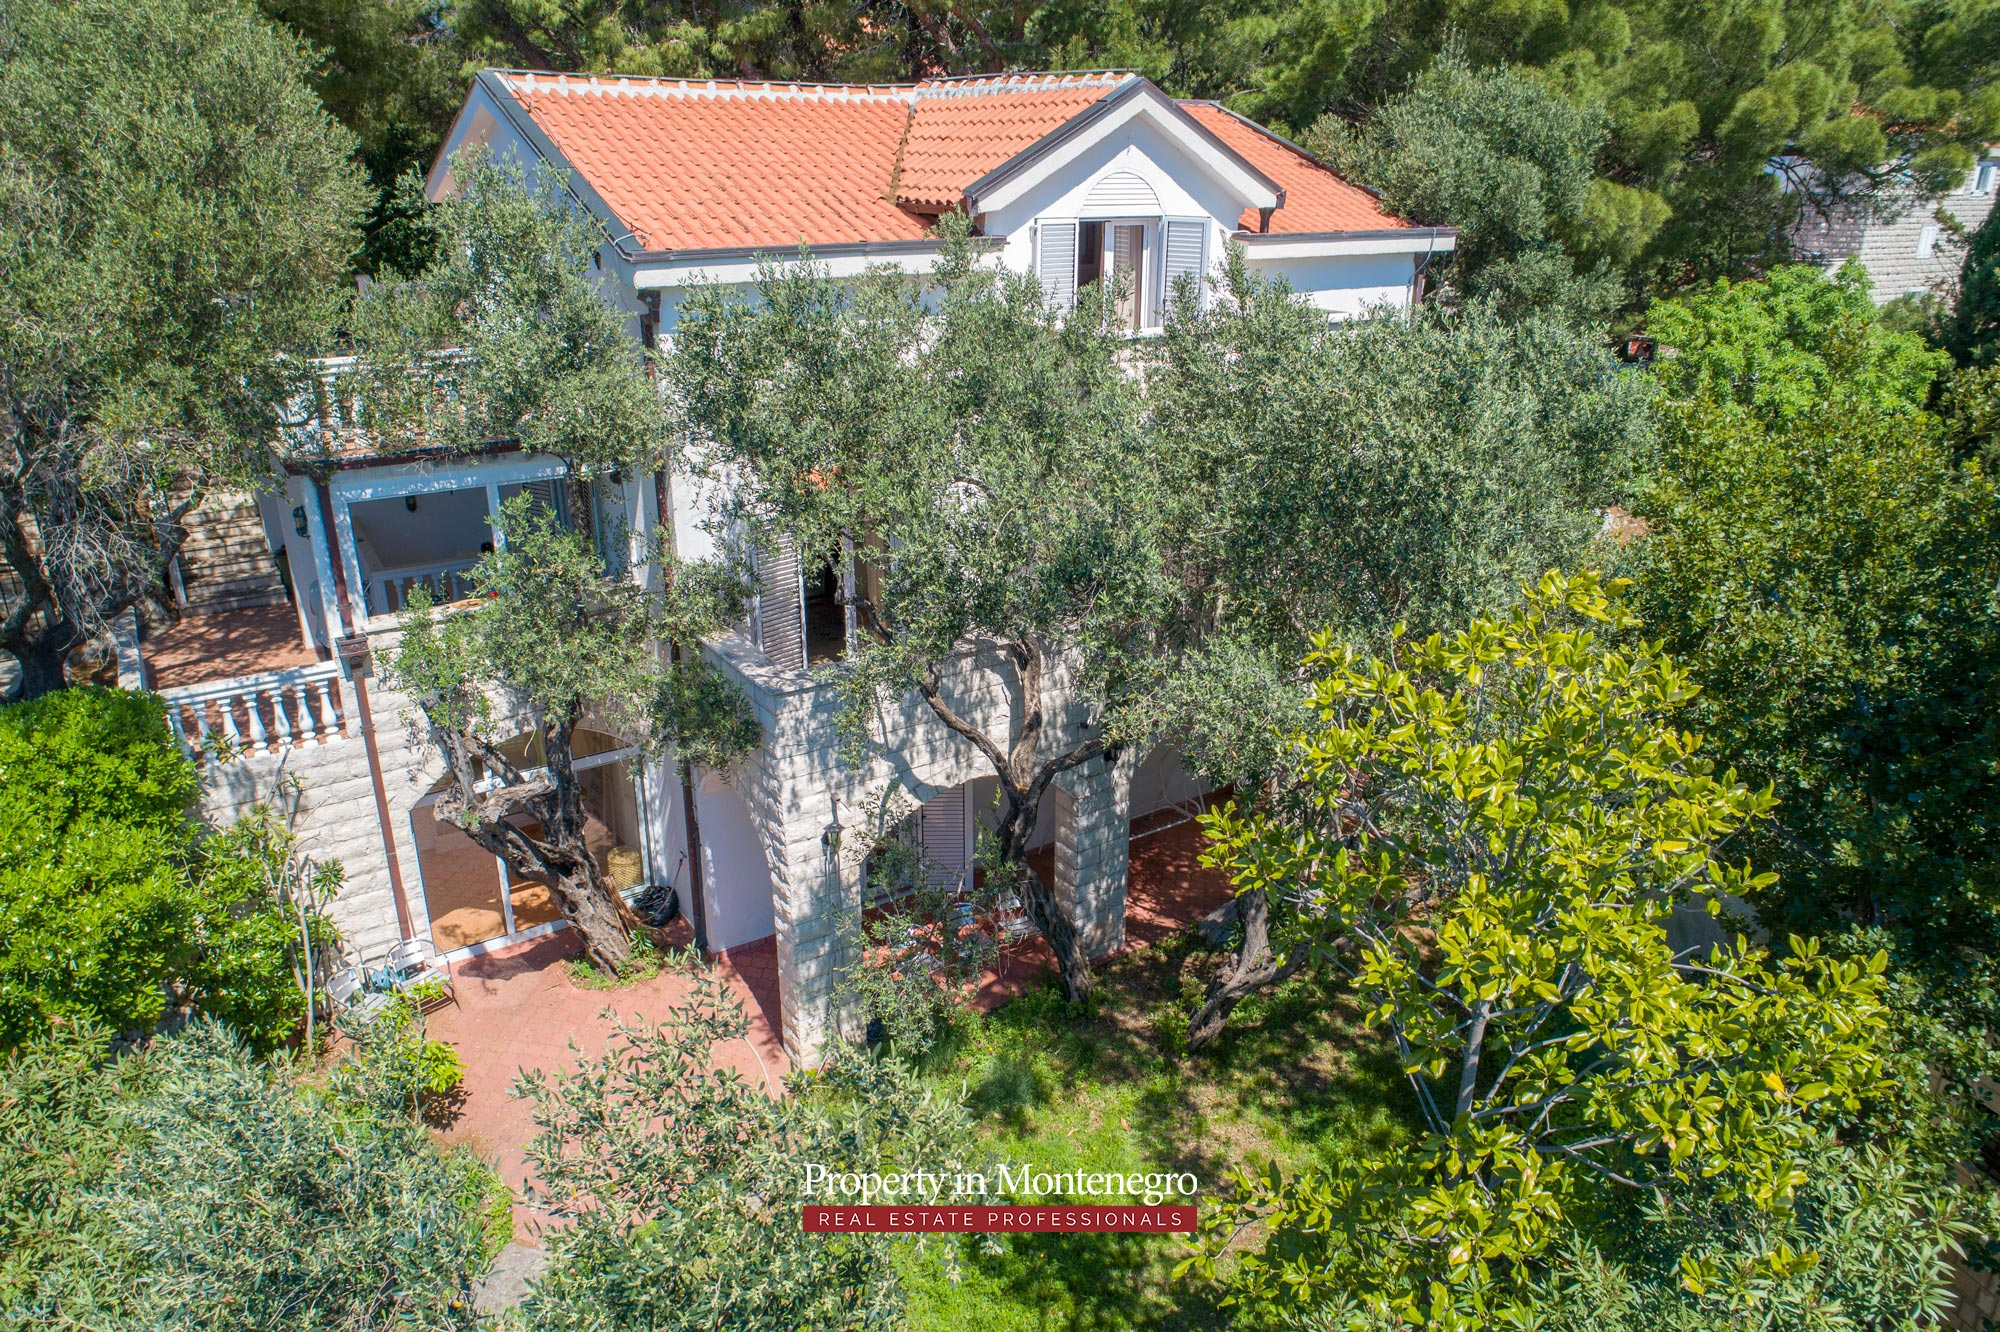 House-with-sea-view-for-sale-in-Budva (1).jpg